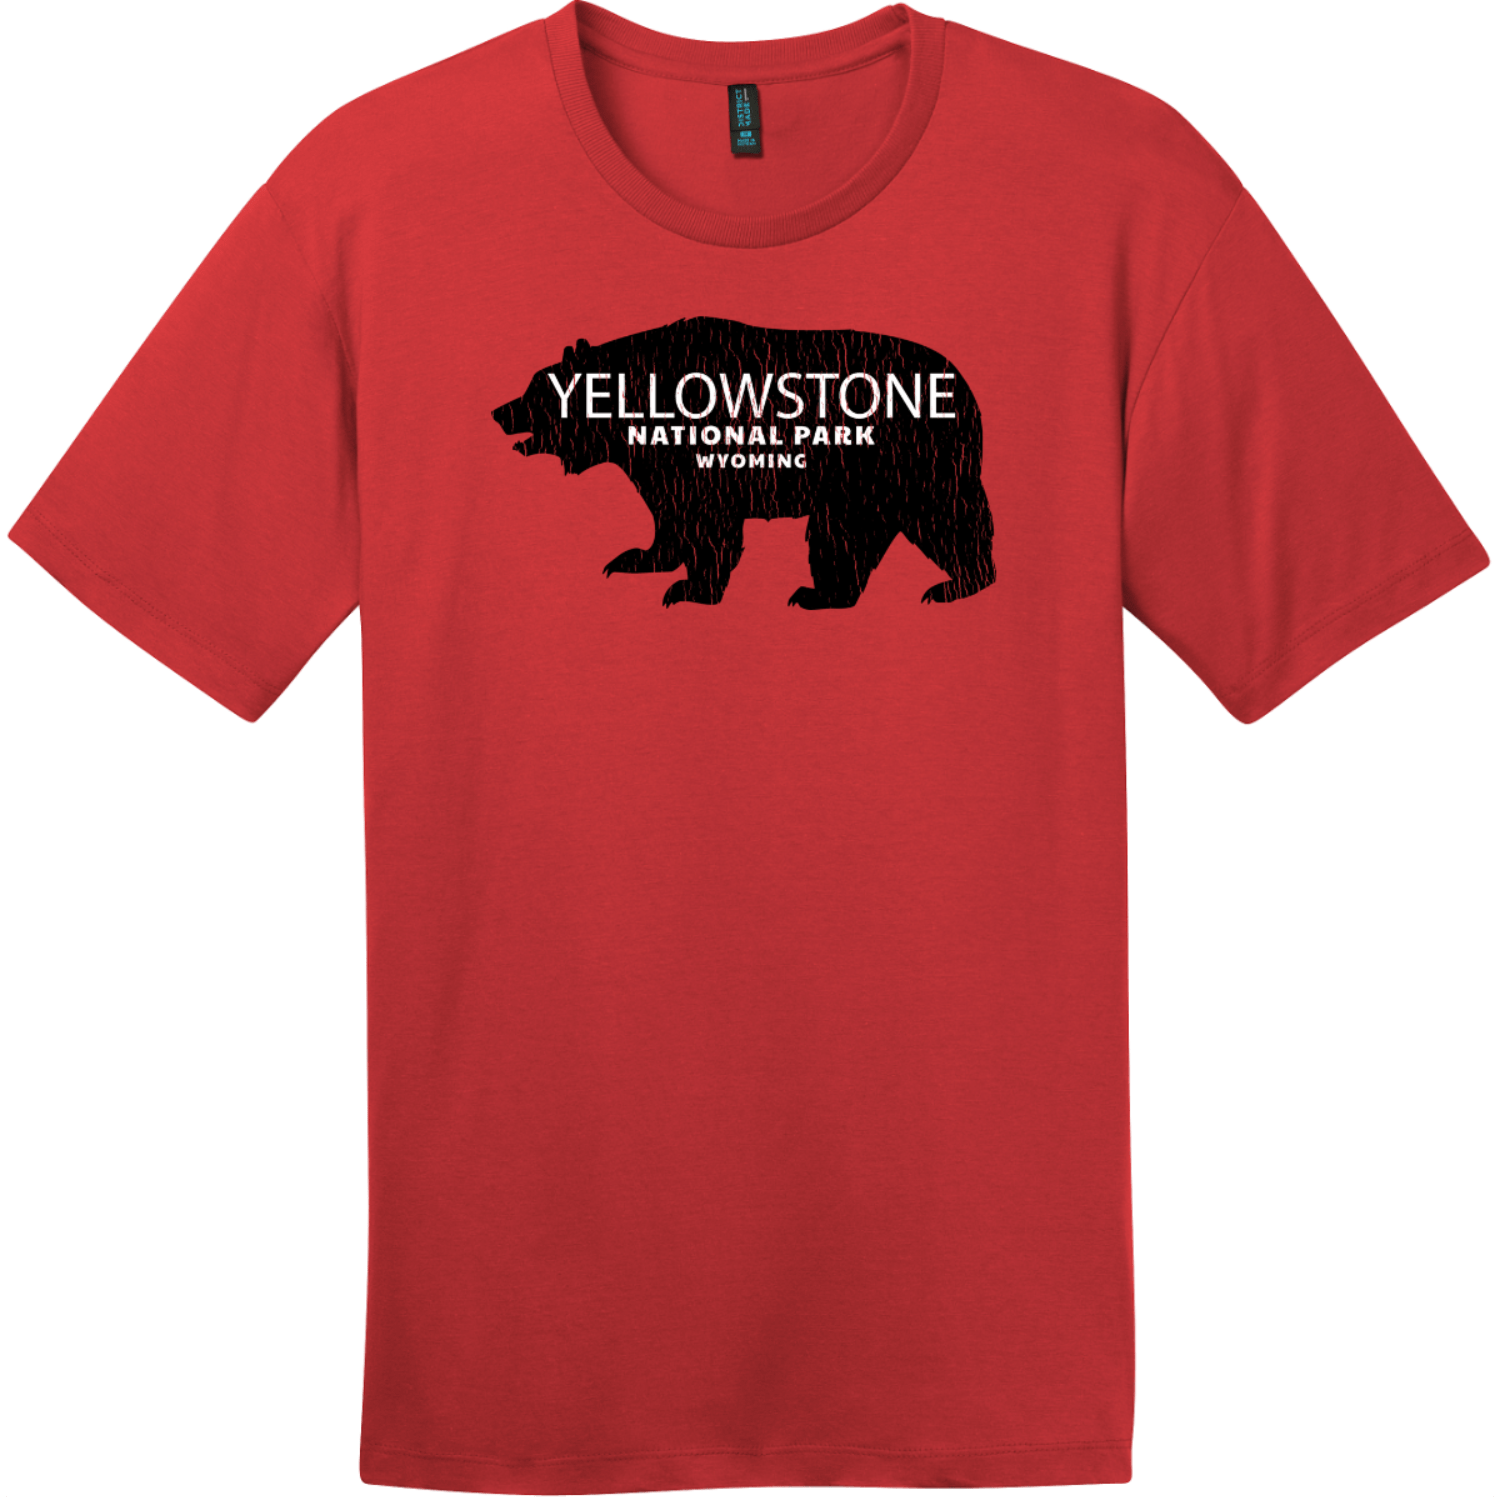 Yellowstone National Park Wyoming Bear T-Shirt Classic Red District Perfect Weight Tee DT104